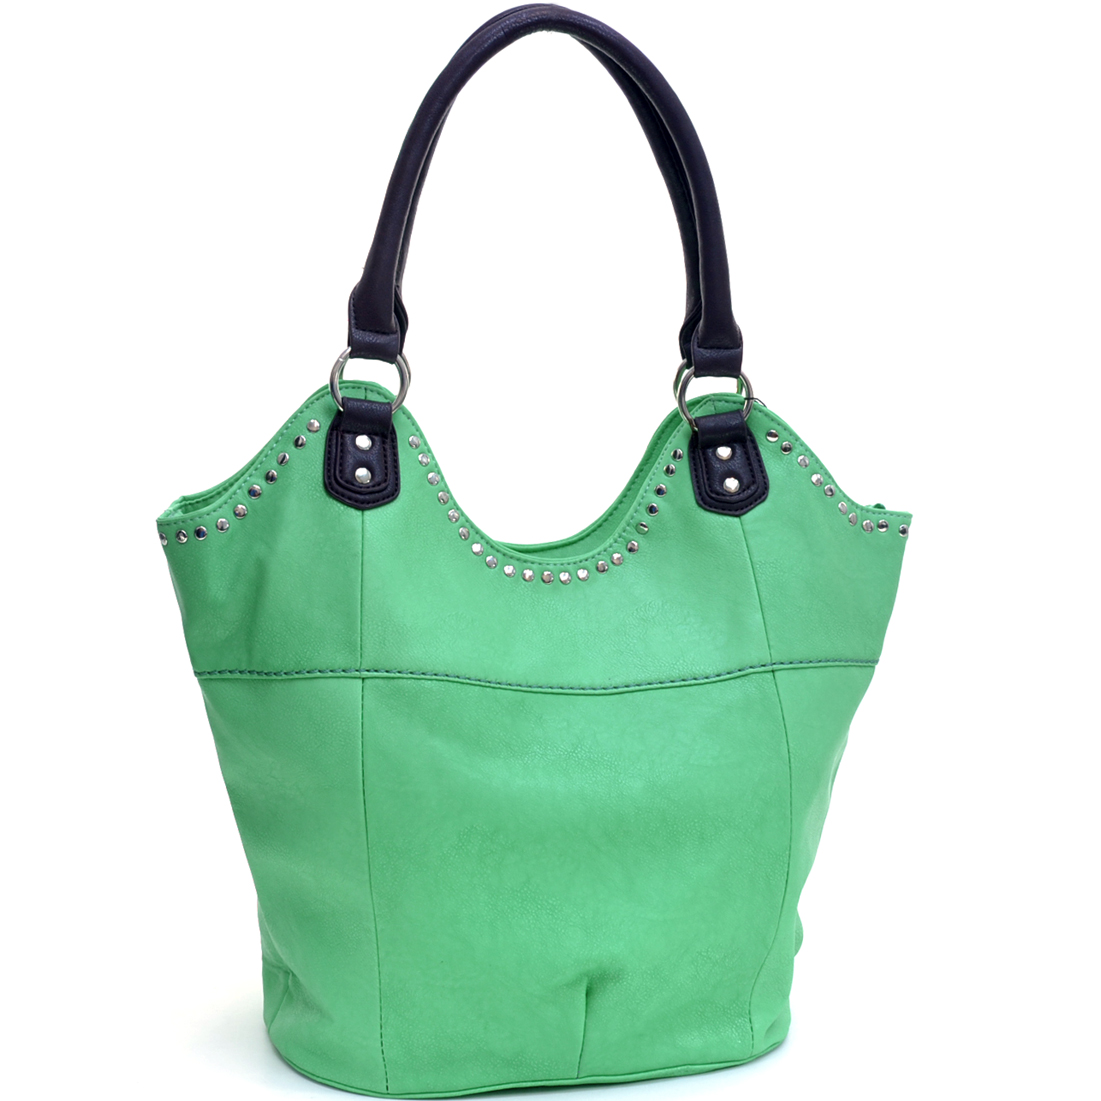 Studded Bucket Bottom Tote Bag with Removable Strap